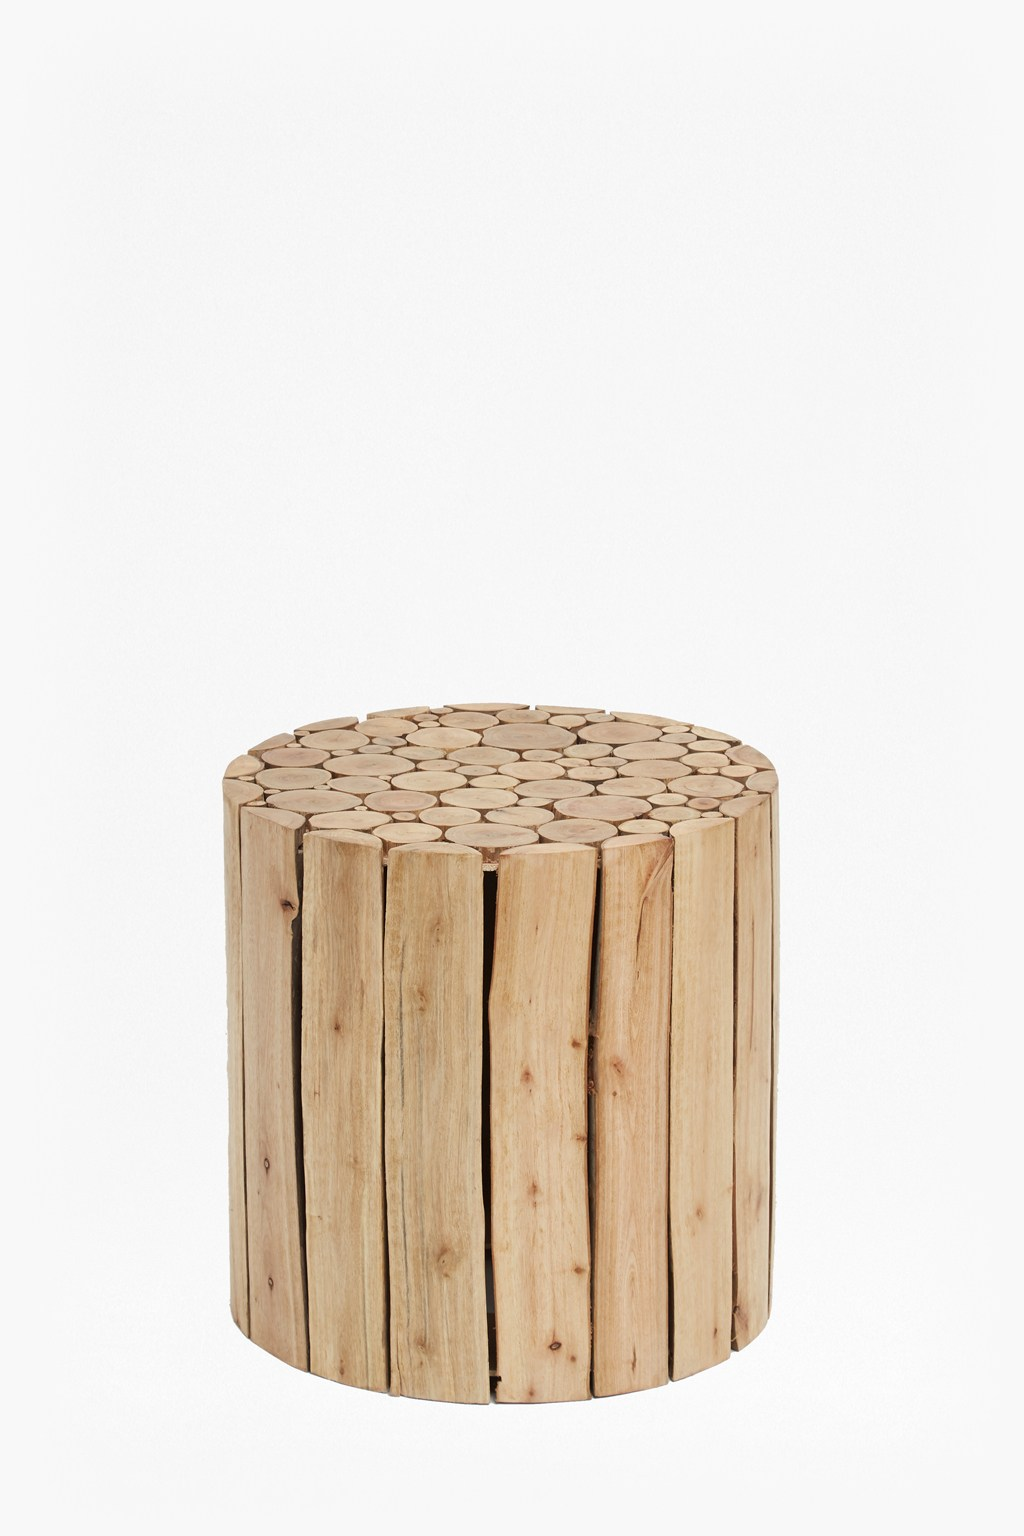 Delicieux Eucalyptus Wood Table. Loading Images.